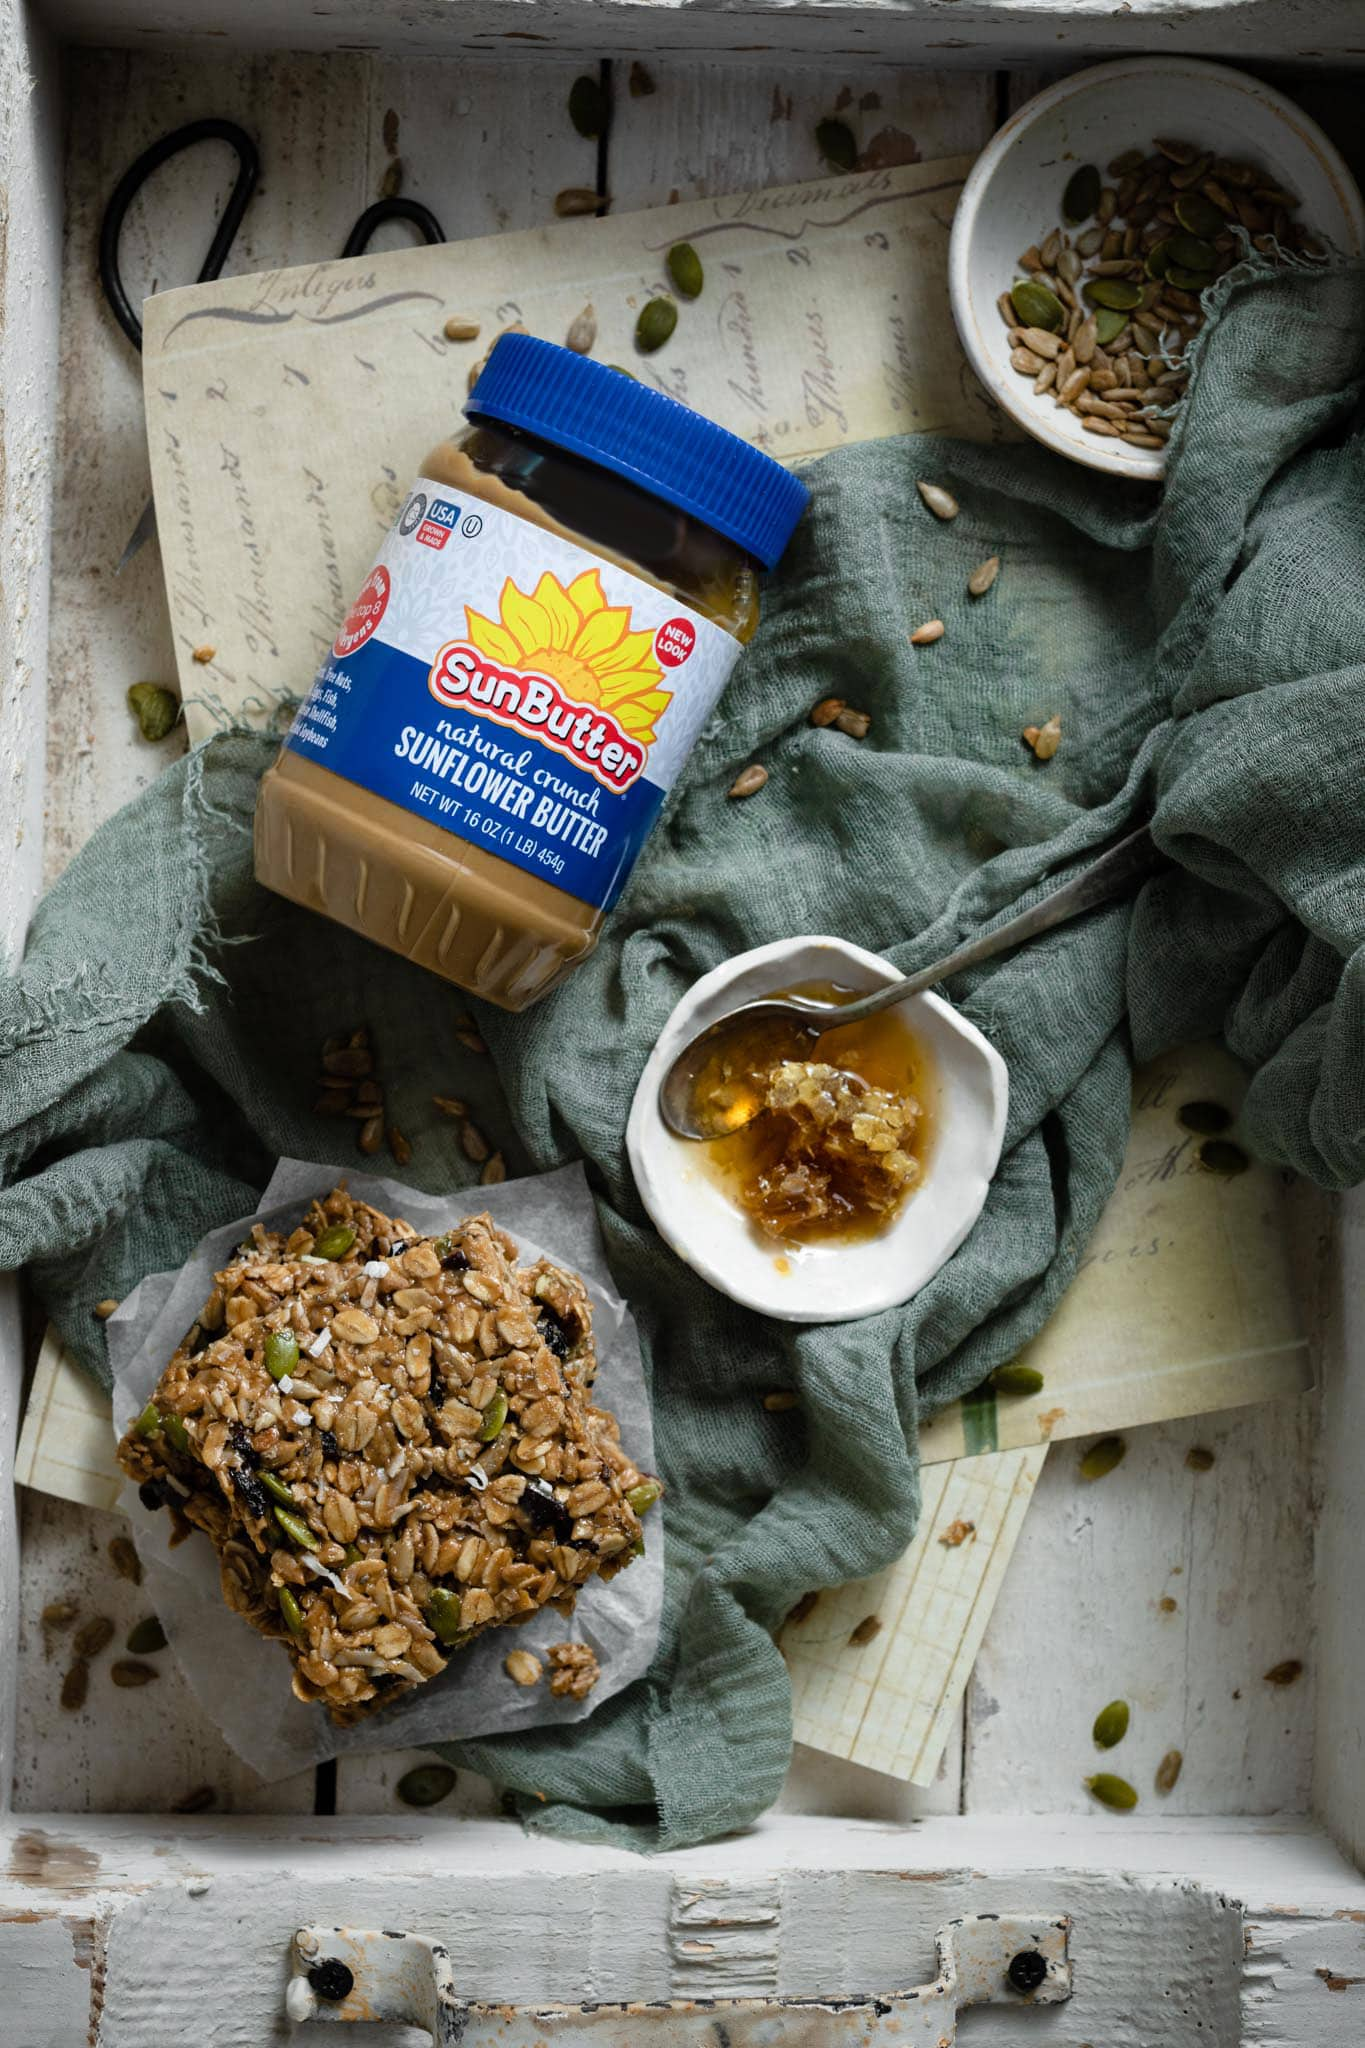 Crunchy SunButter with homemade granola bars.